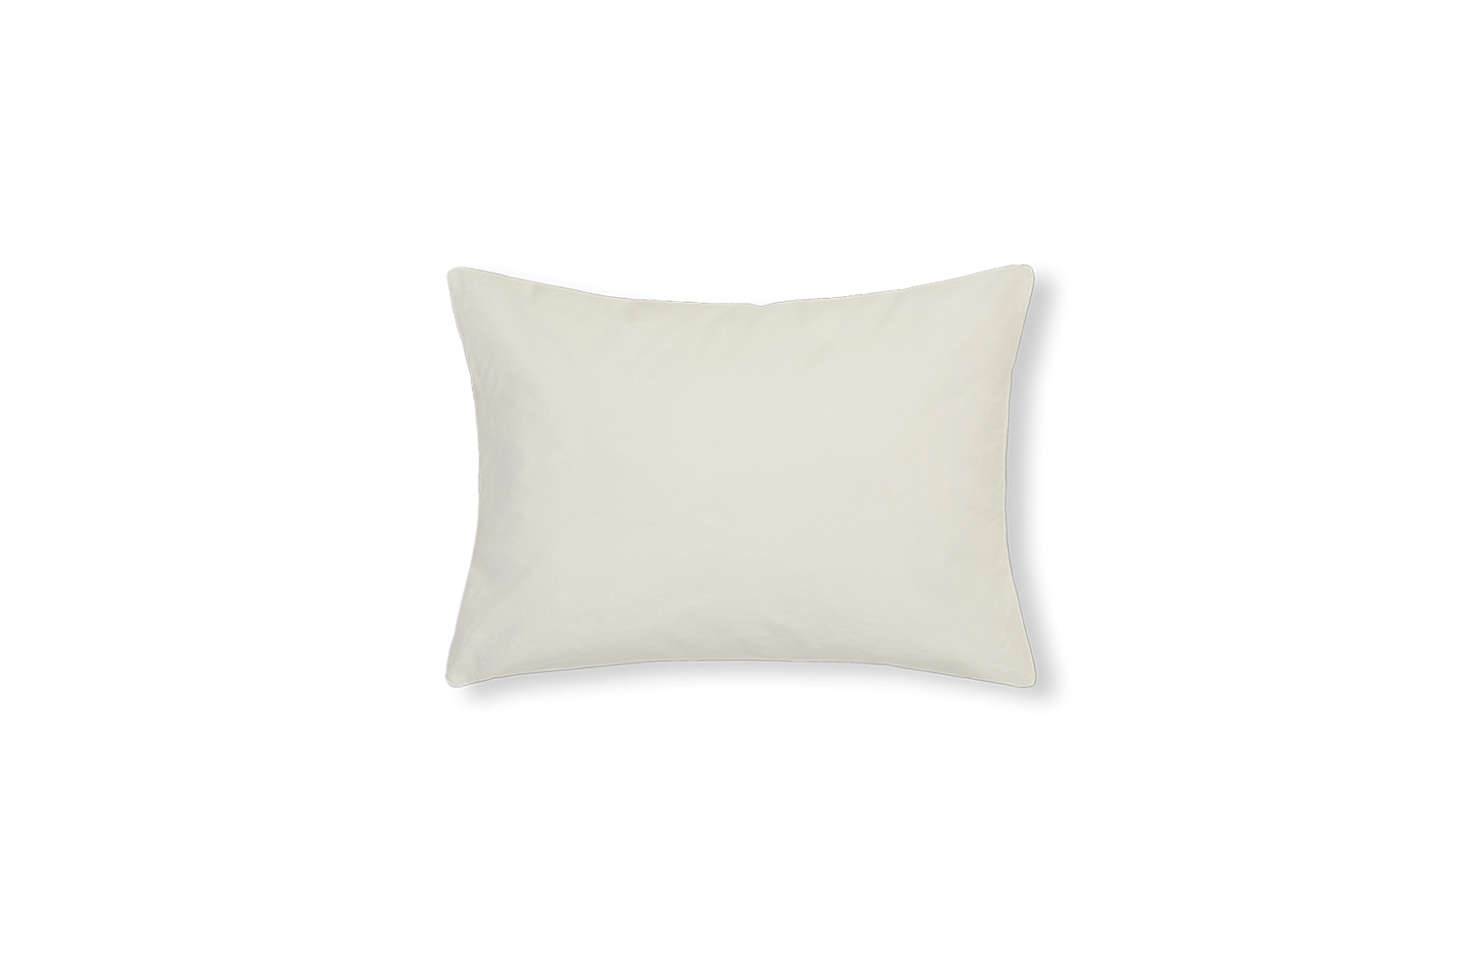 The Optic White Linen Cushion Cover €39 at Merci.